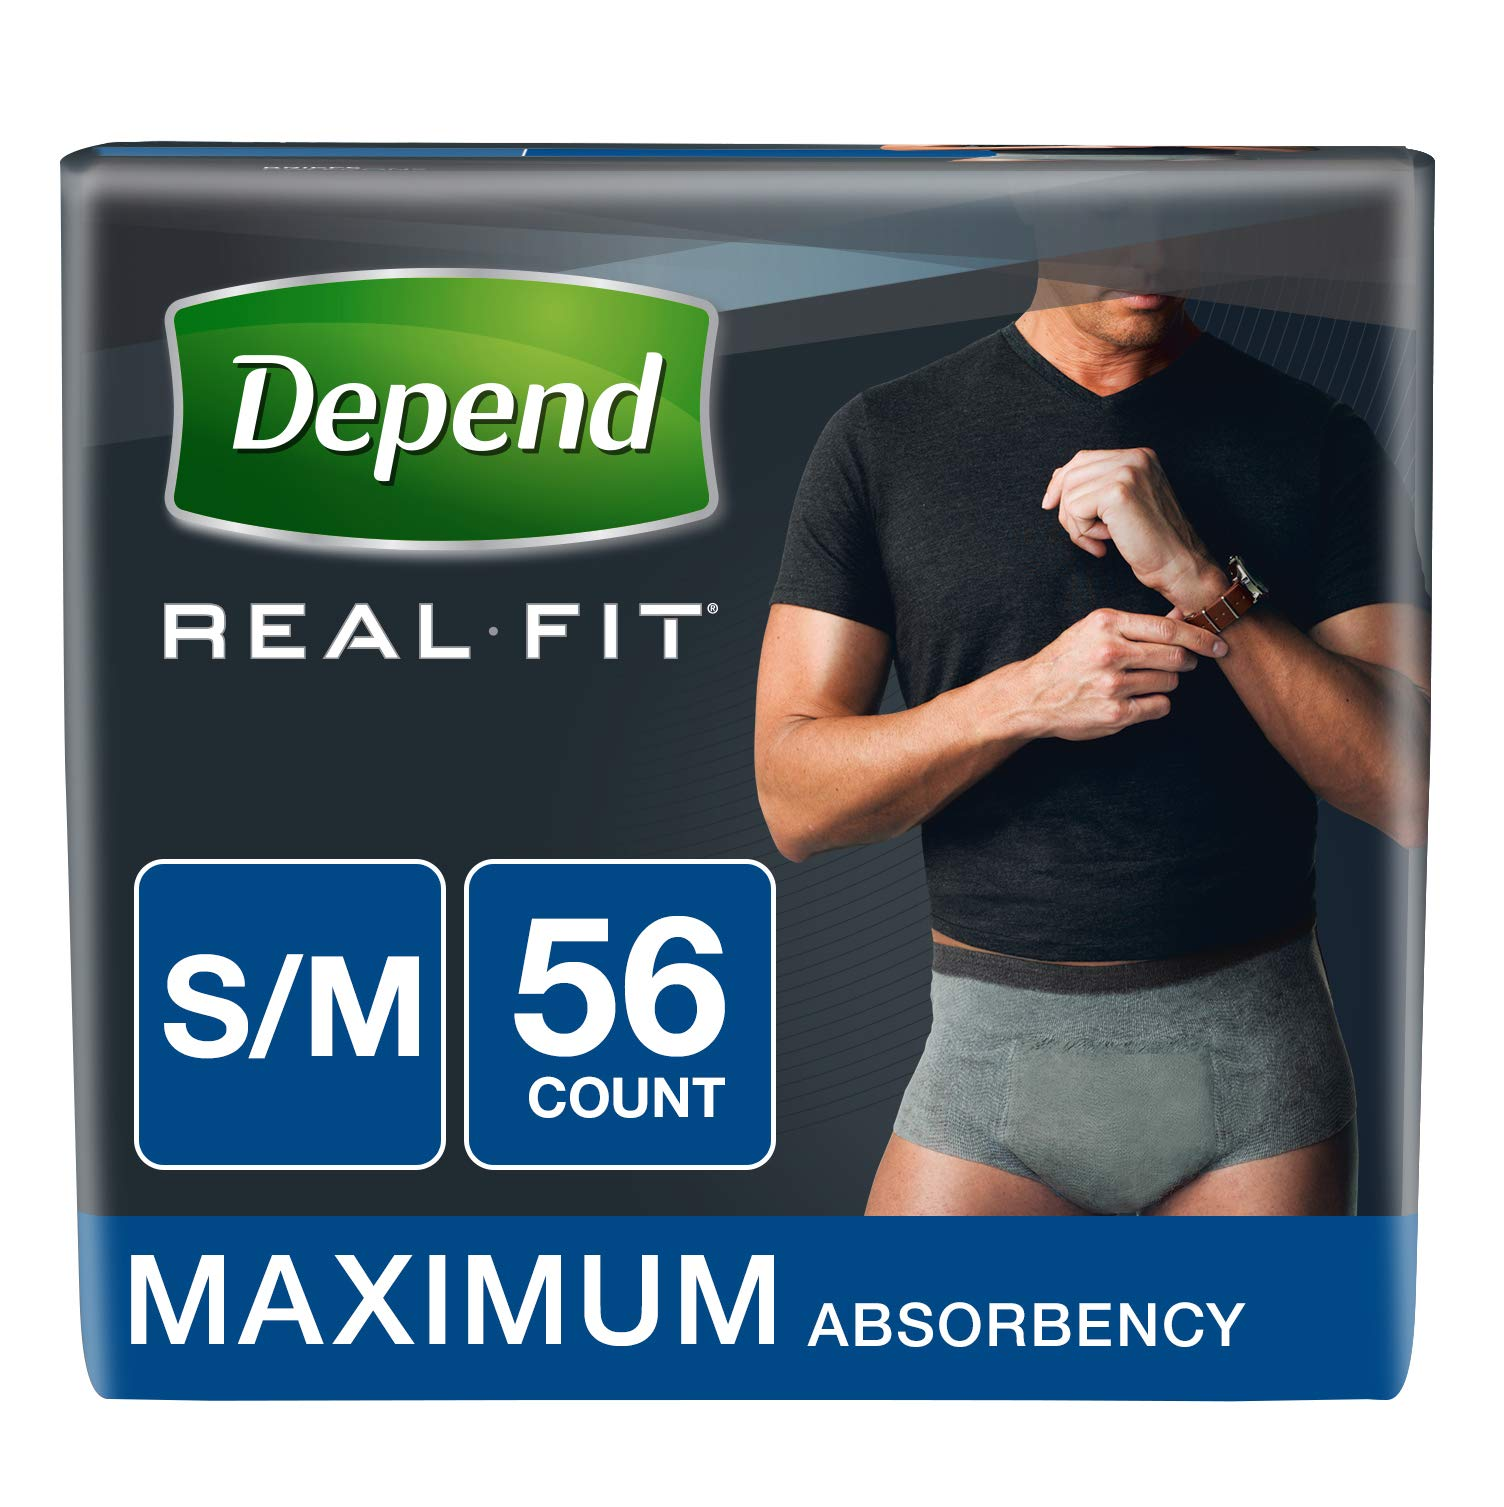 3b5c26a71850 Depend Real Fit Incontinence Briefs for Men, Maximum Absorbency, S/M, Grey